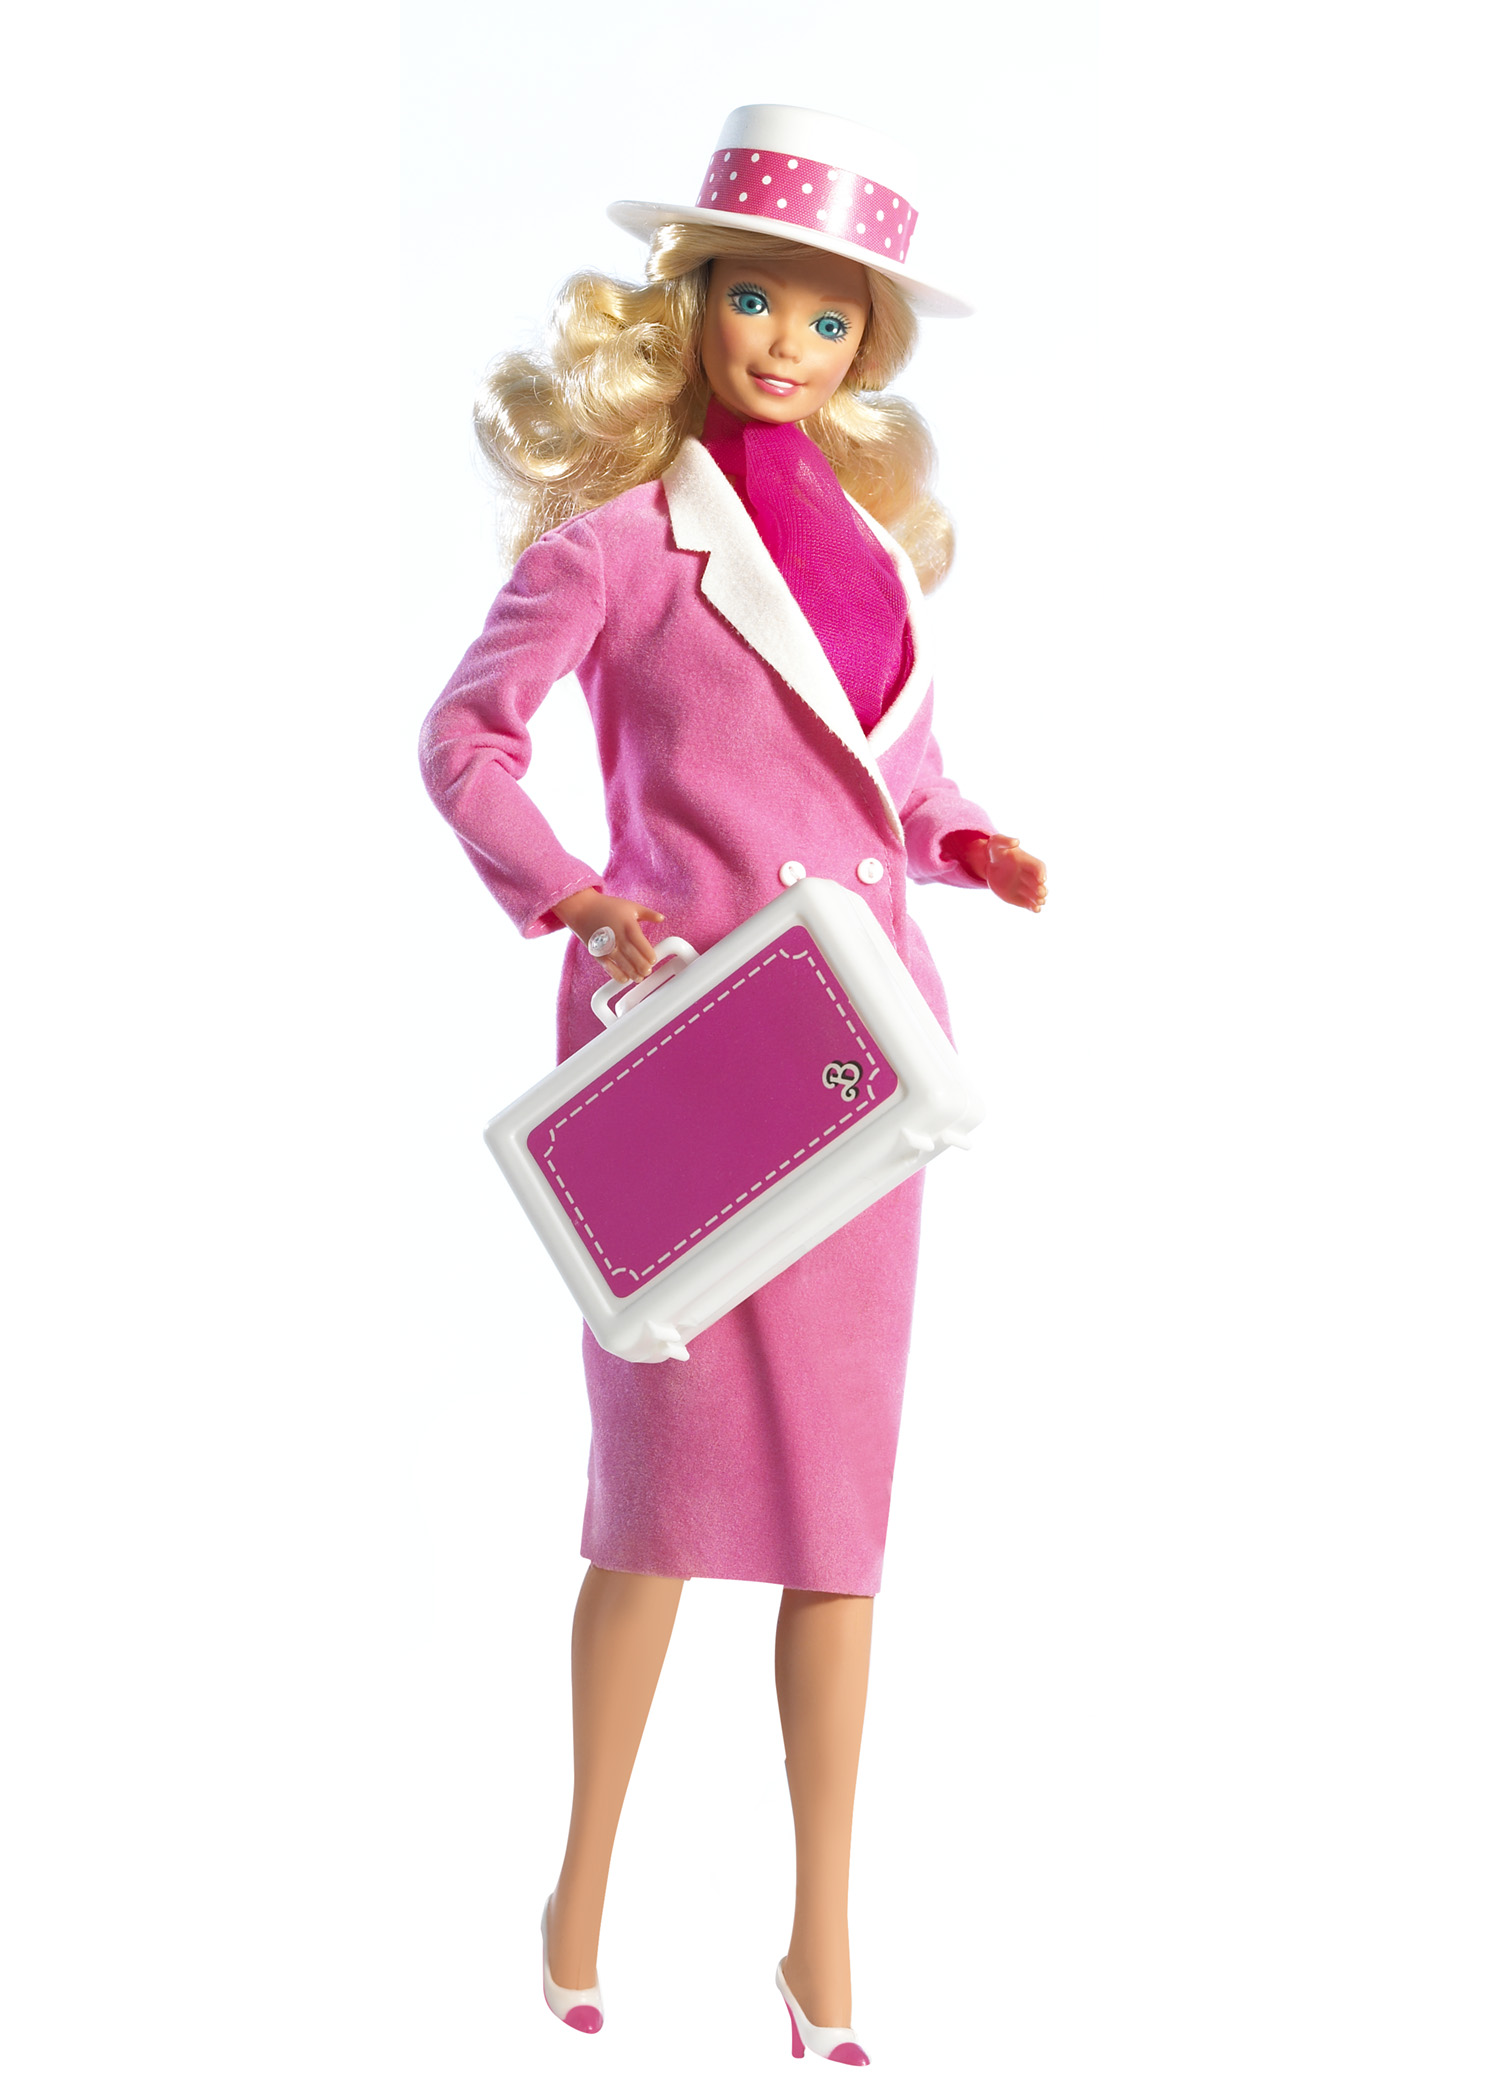 What Barbie Friends Looked Like The Year You Were Born